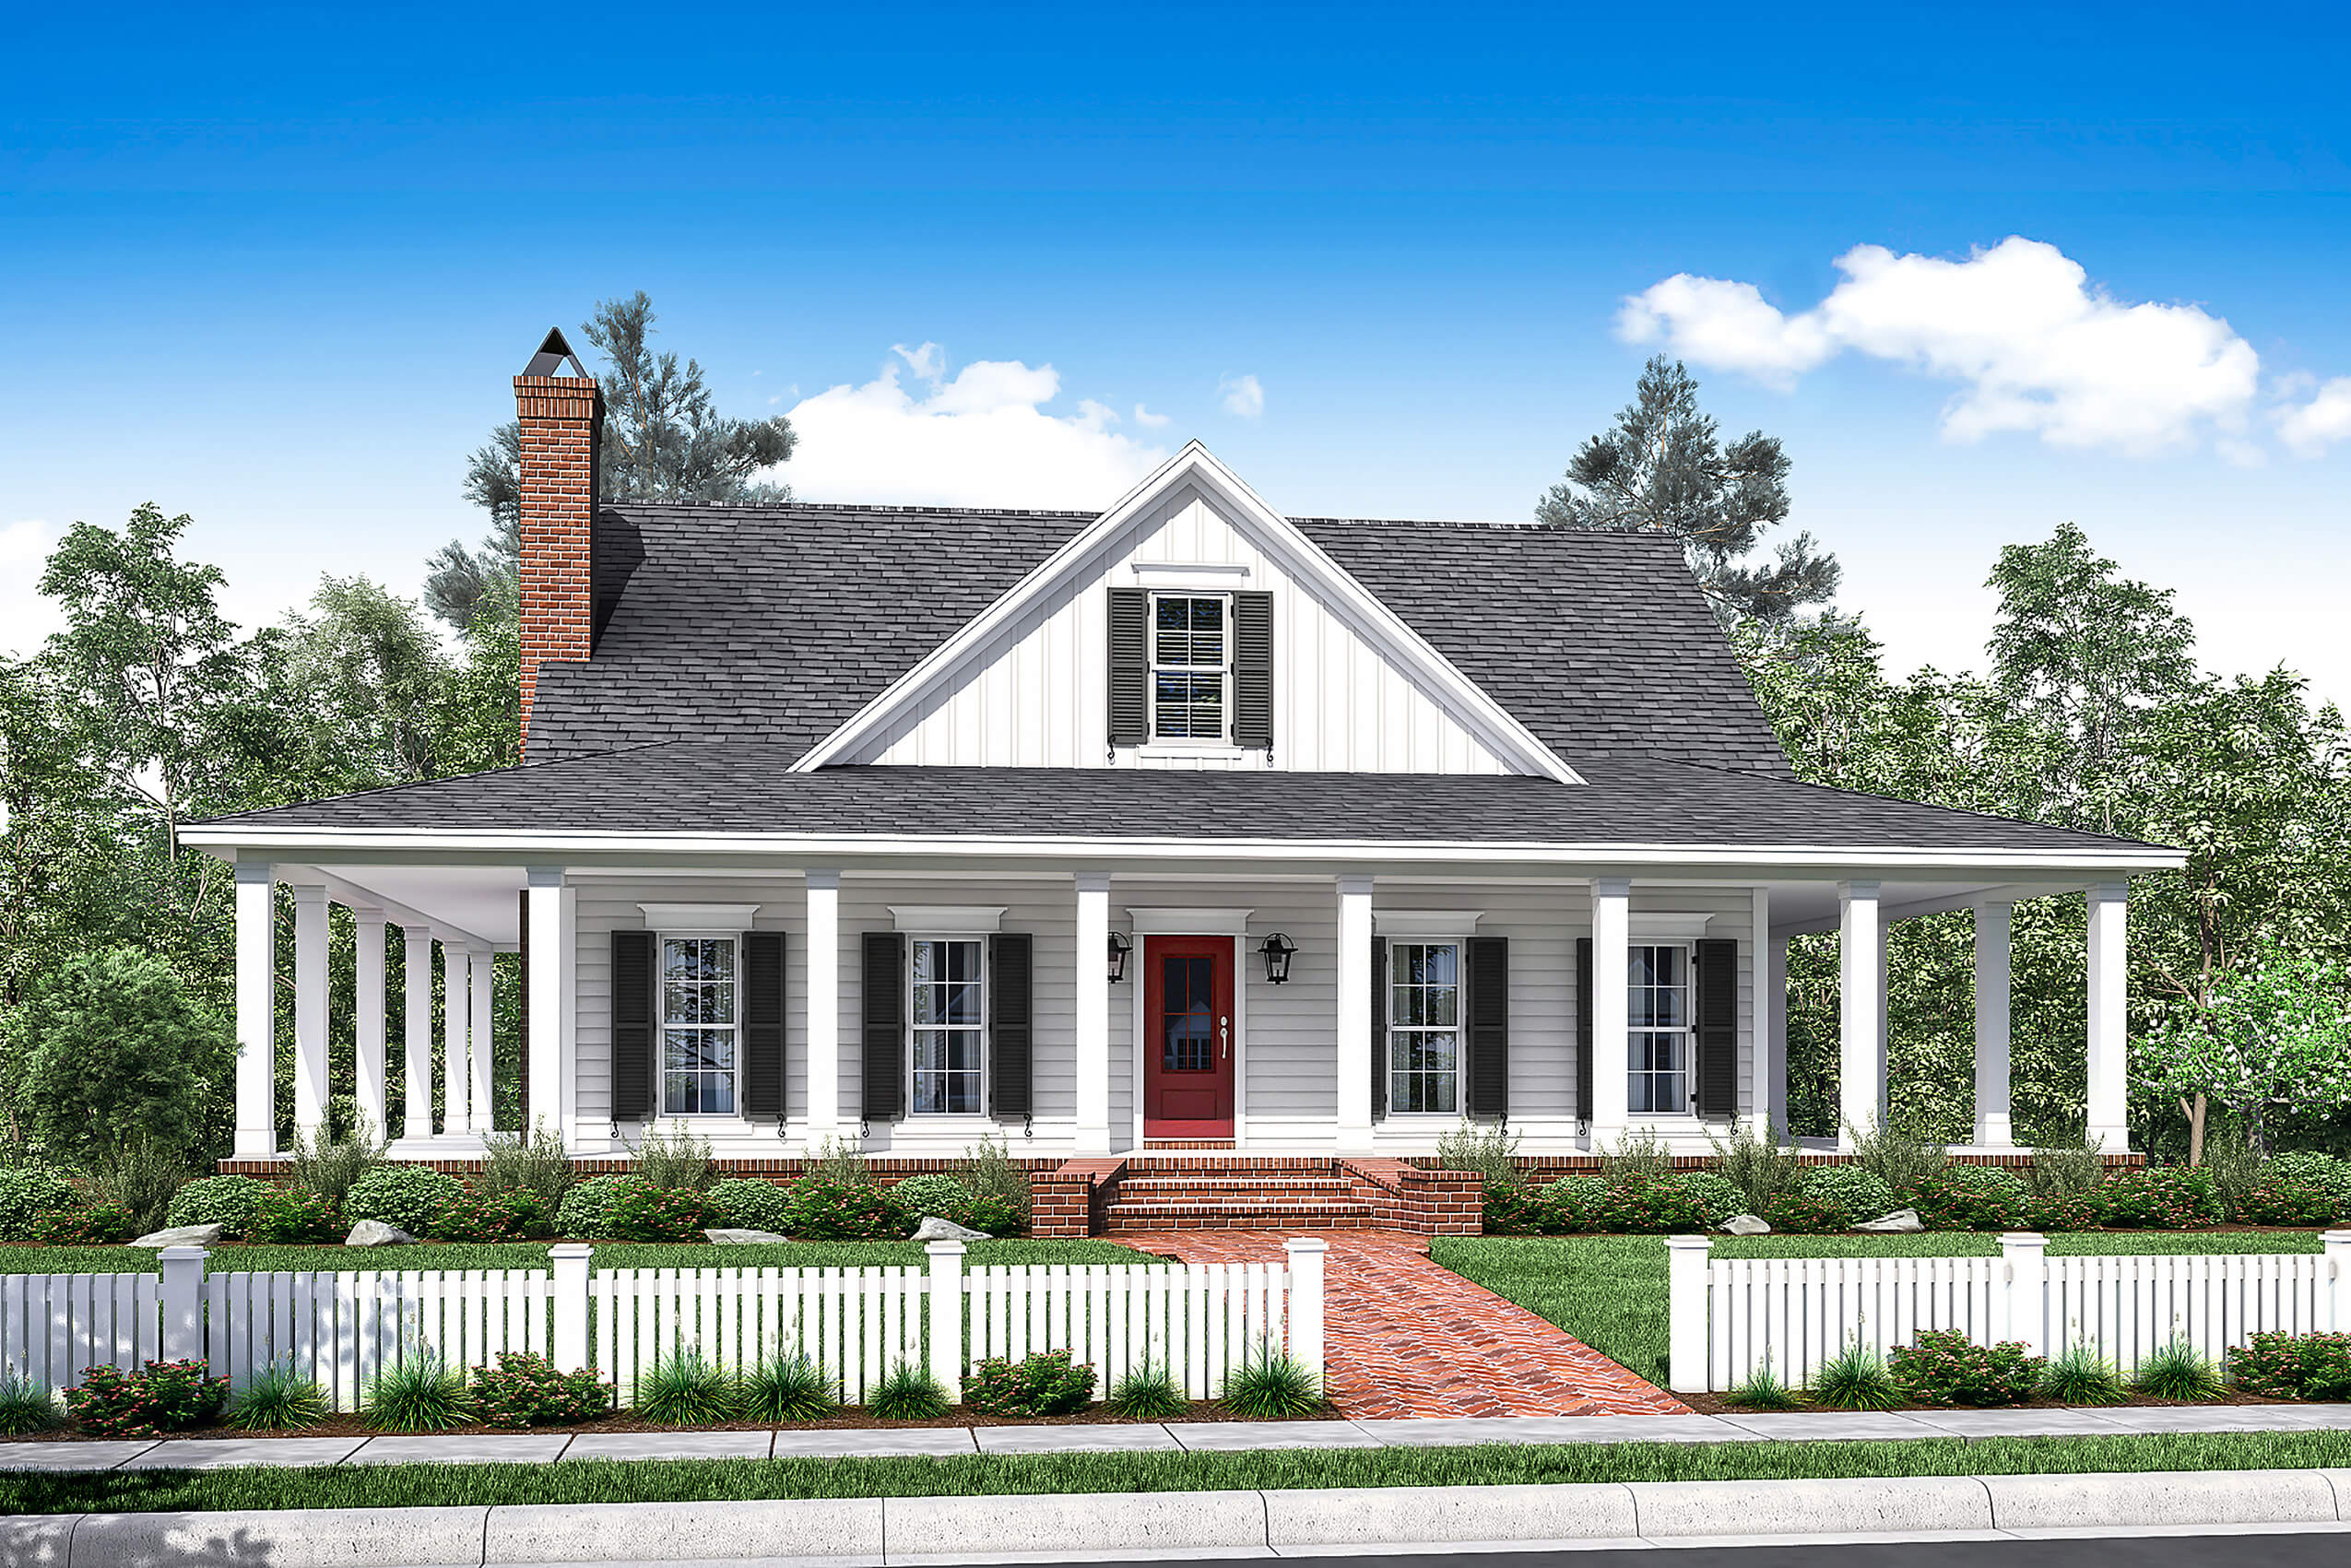 3 Bedrm, 2084 Sq Ft Southern Home With Wrap-Around Porch